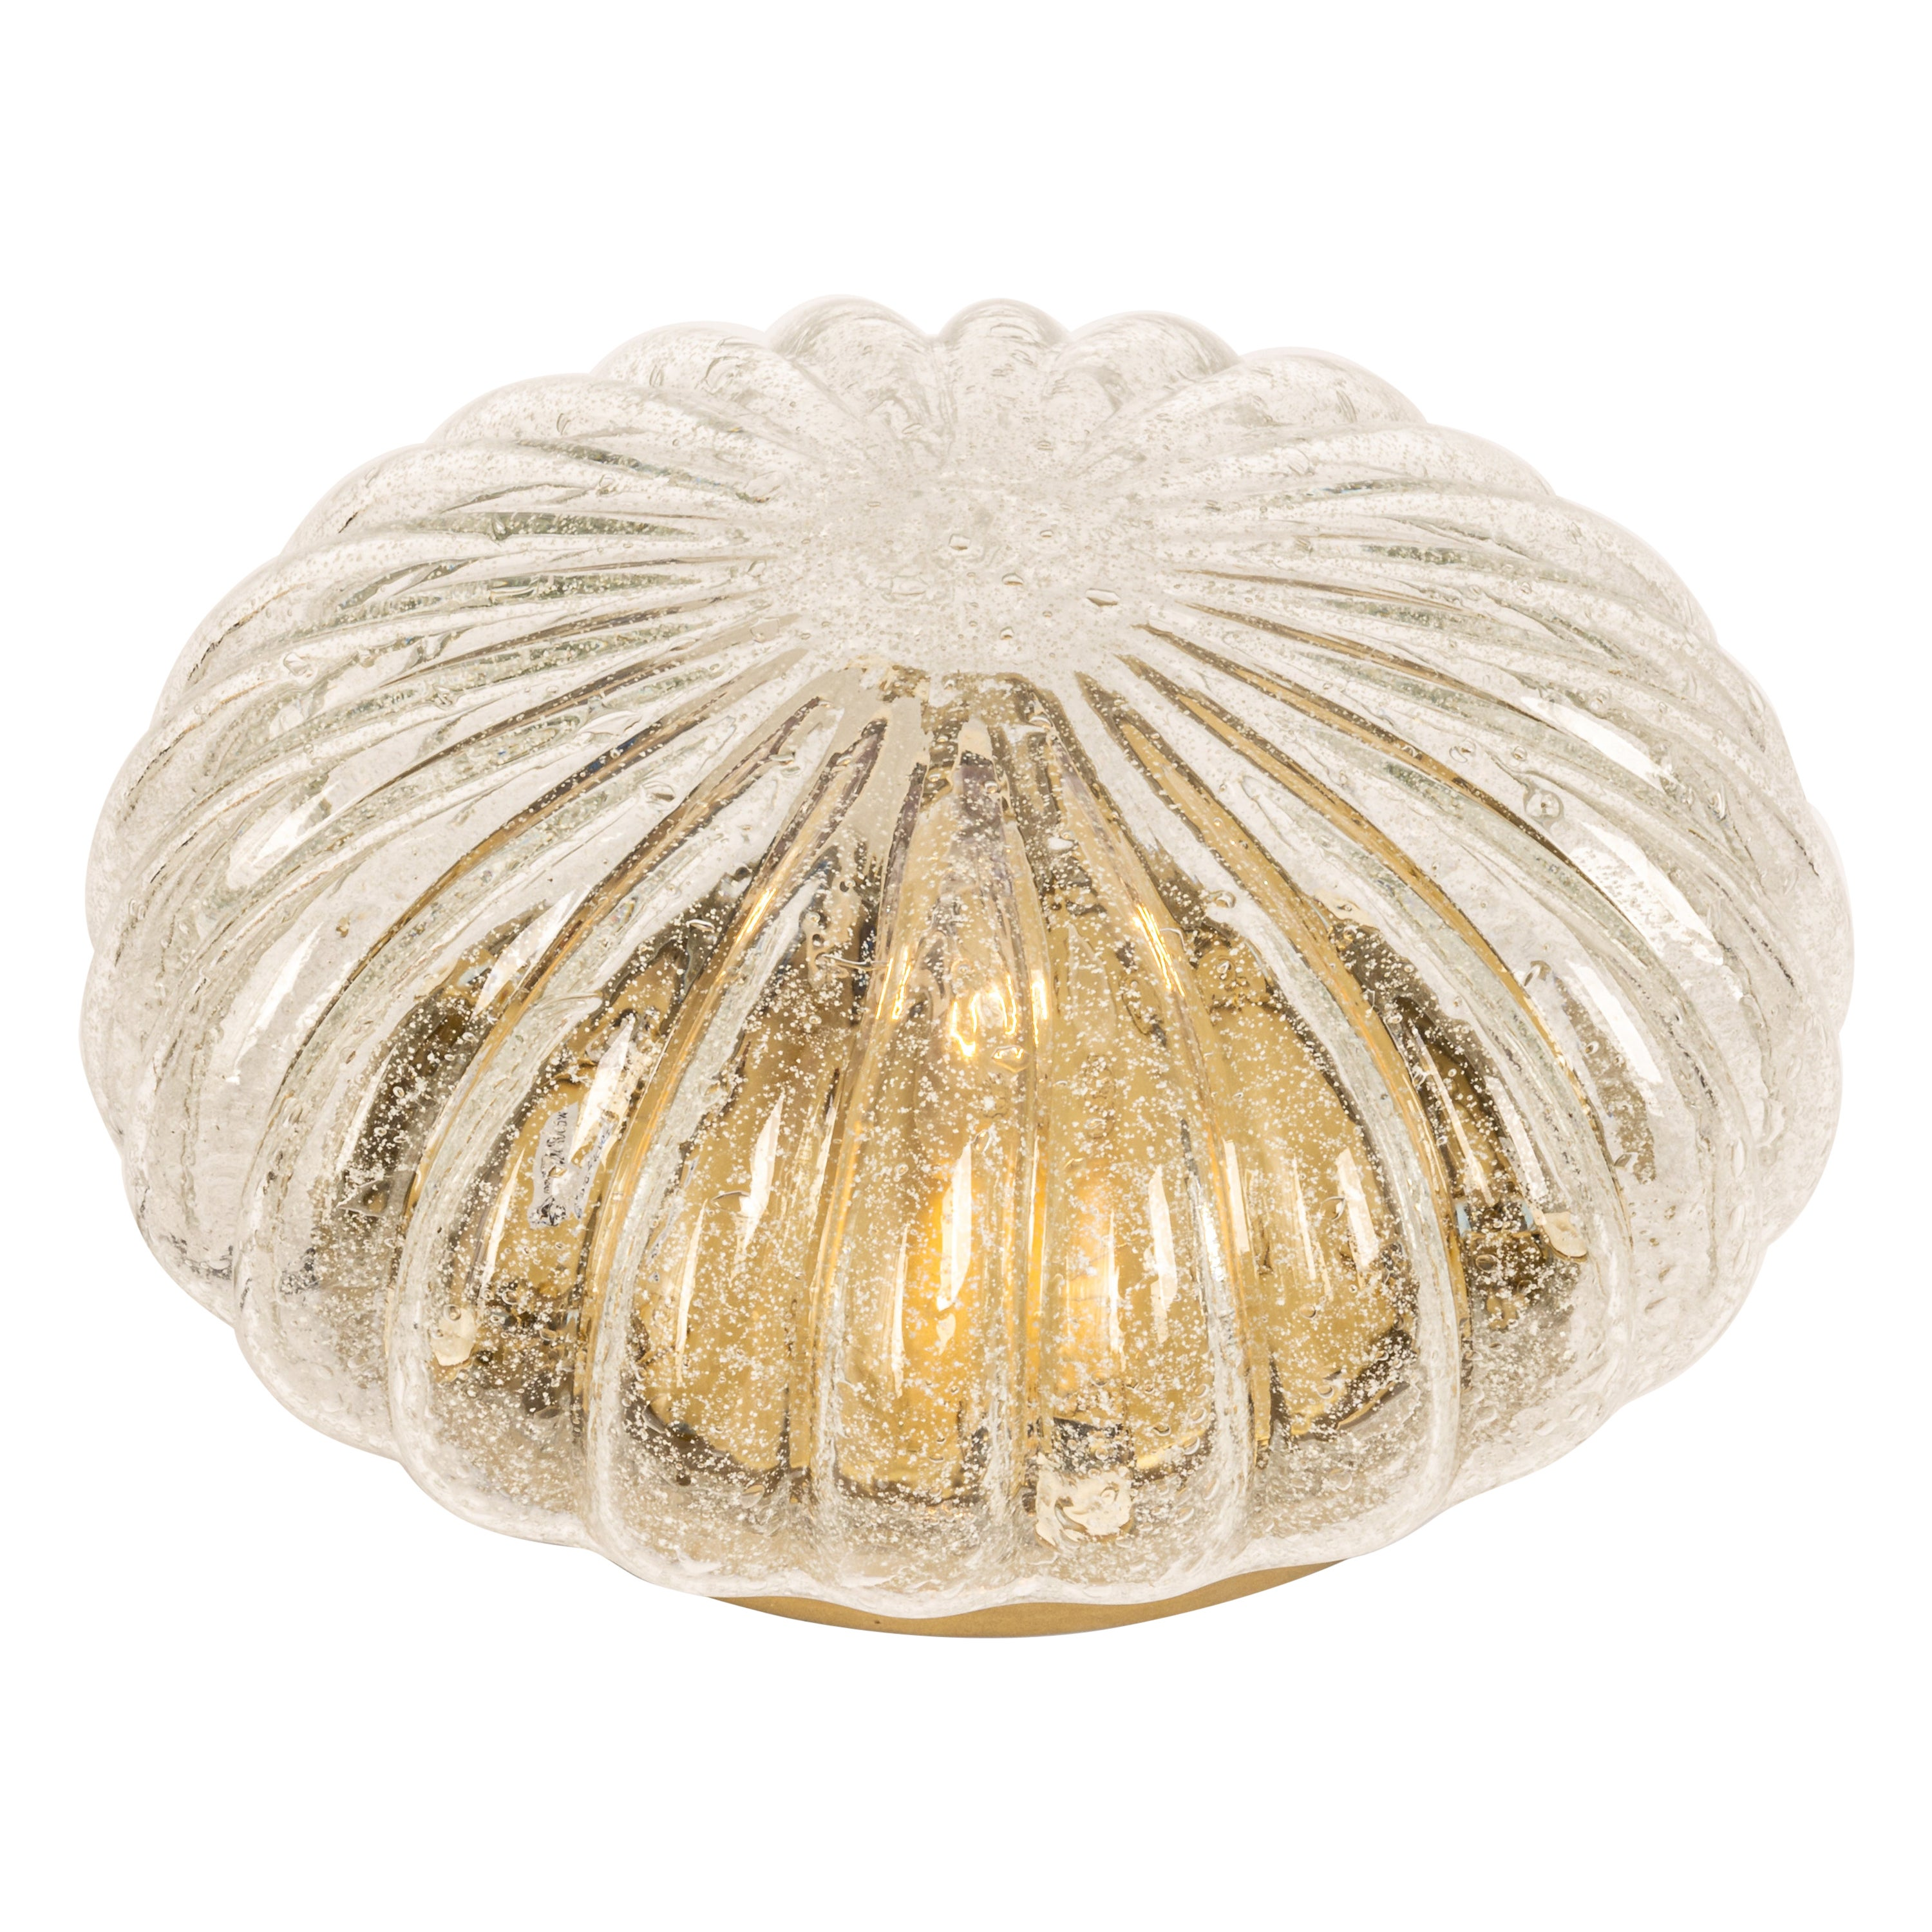 Large Wall Sconce/Flush Mount, by Doria, Germany, 1970s